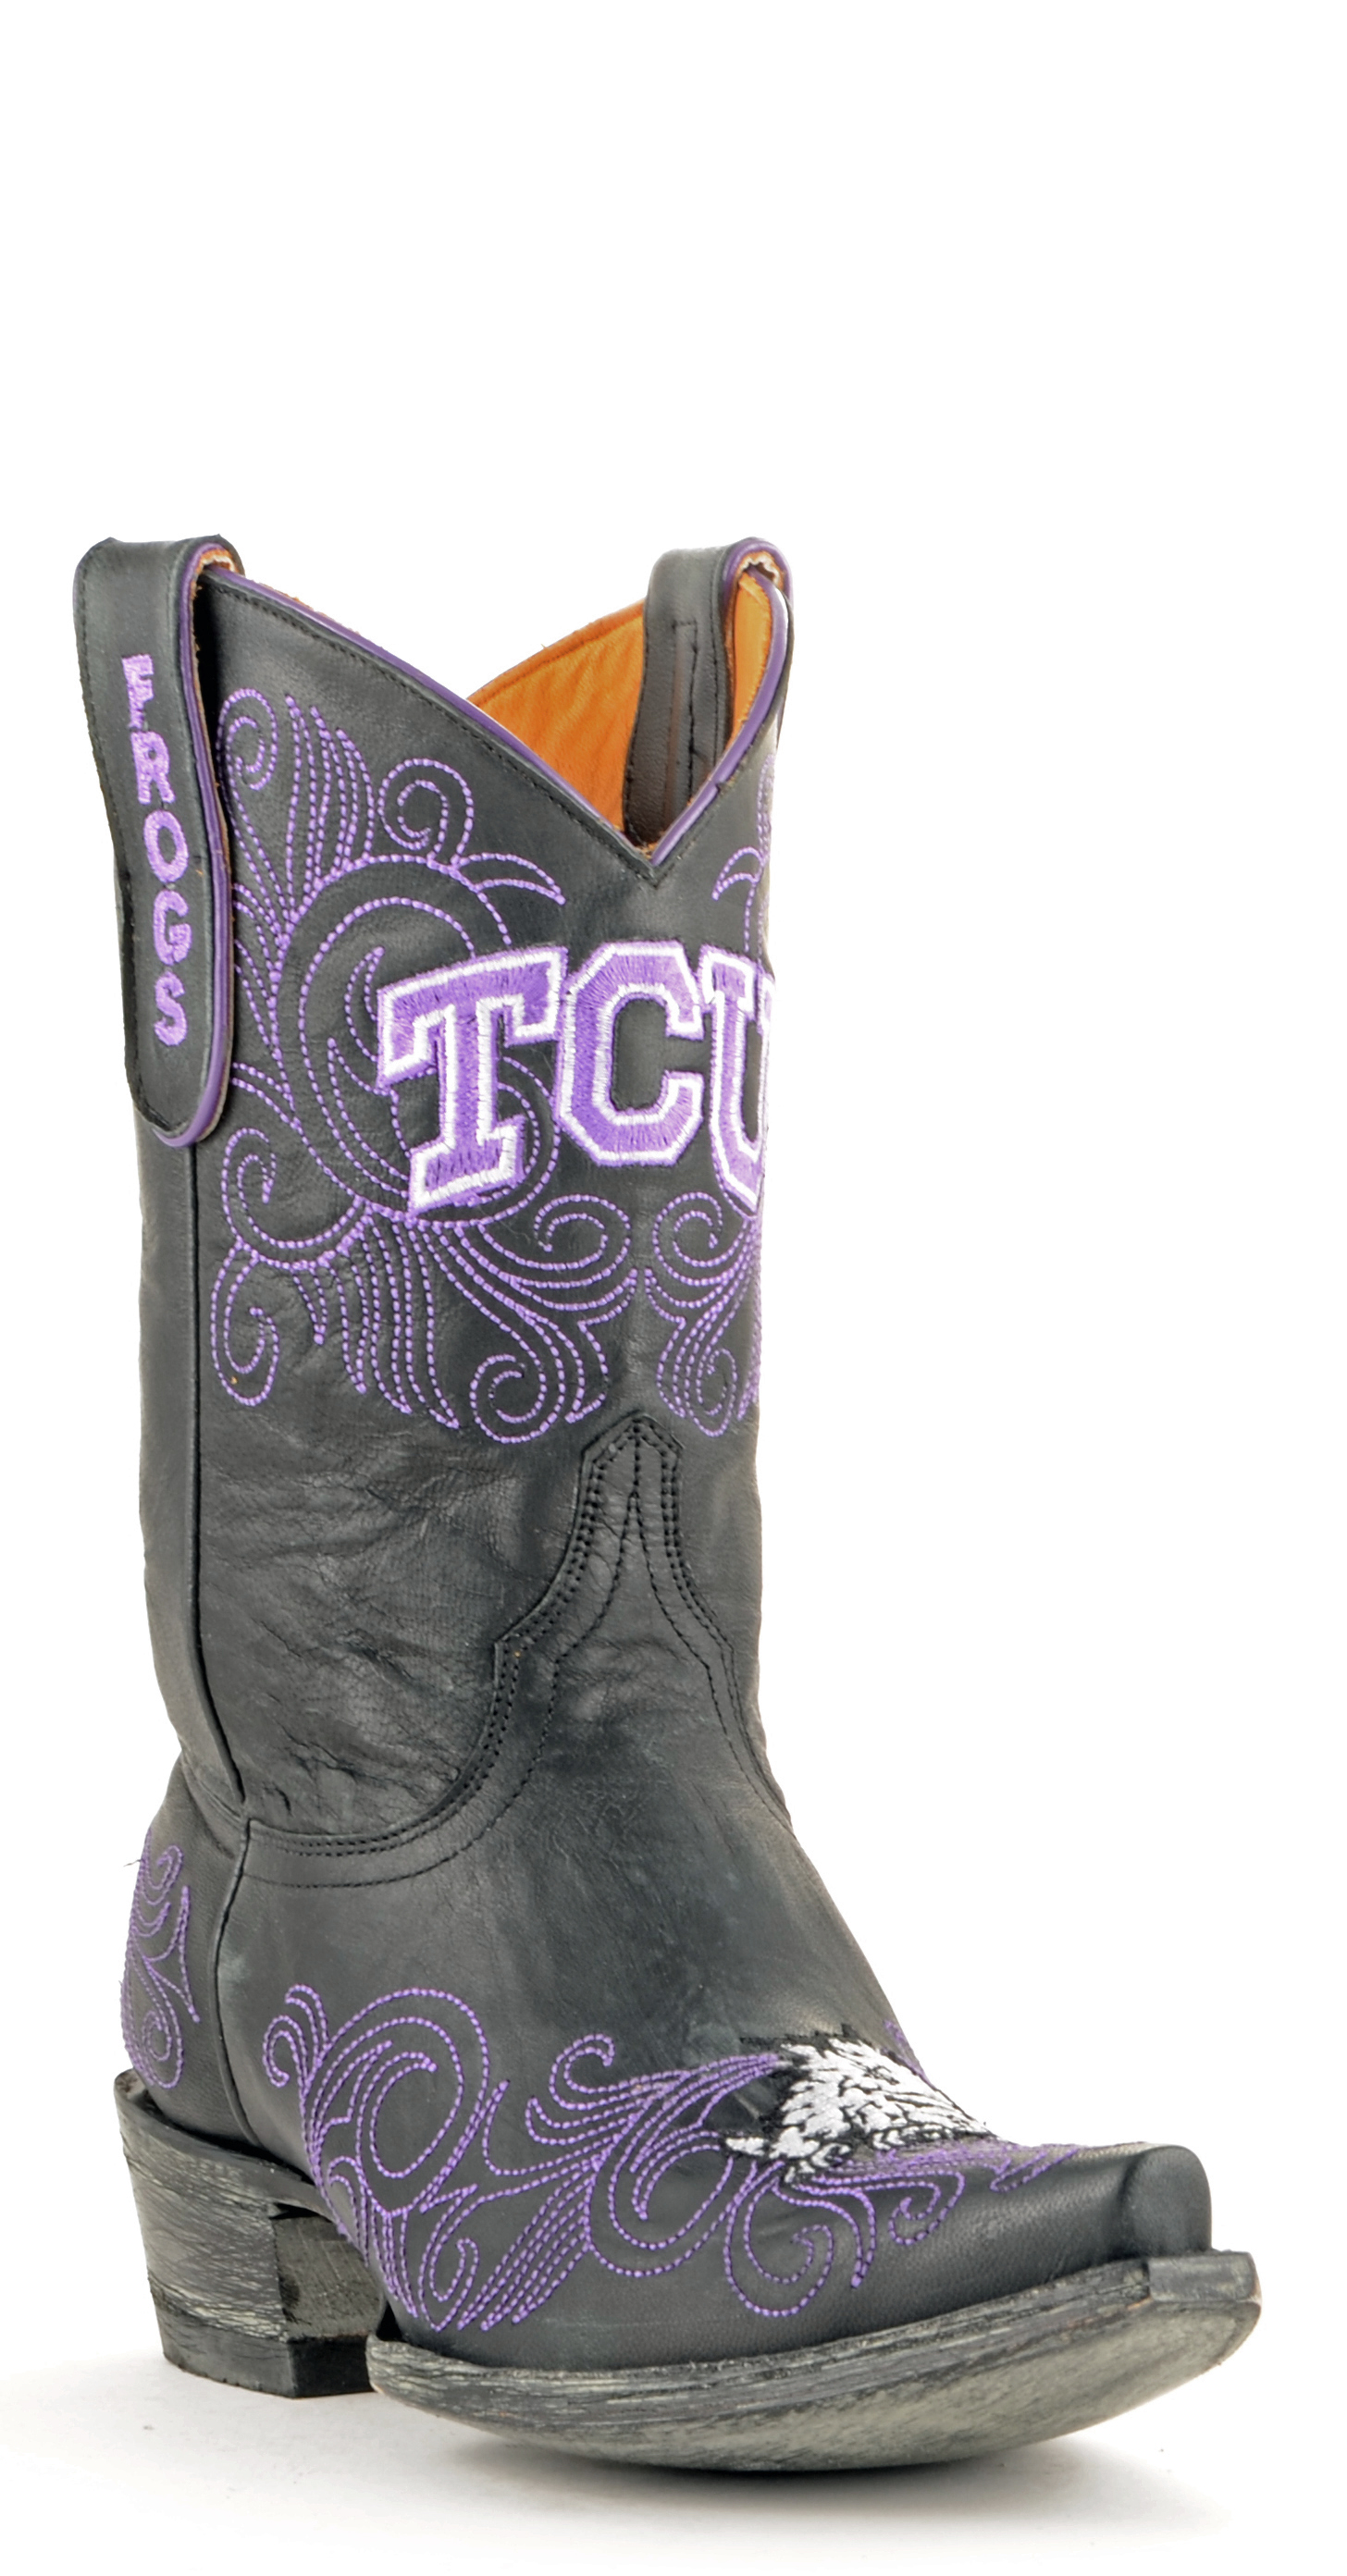 "Women's Black TCU Horned Frogs 10"" Embroidered Boots by GameDay Boots"